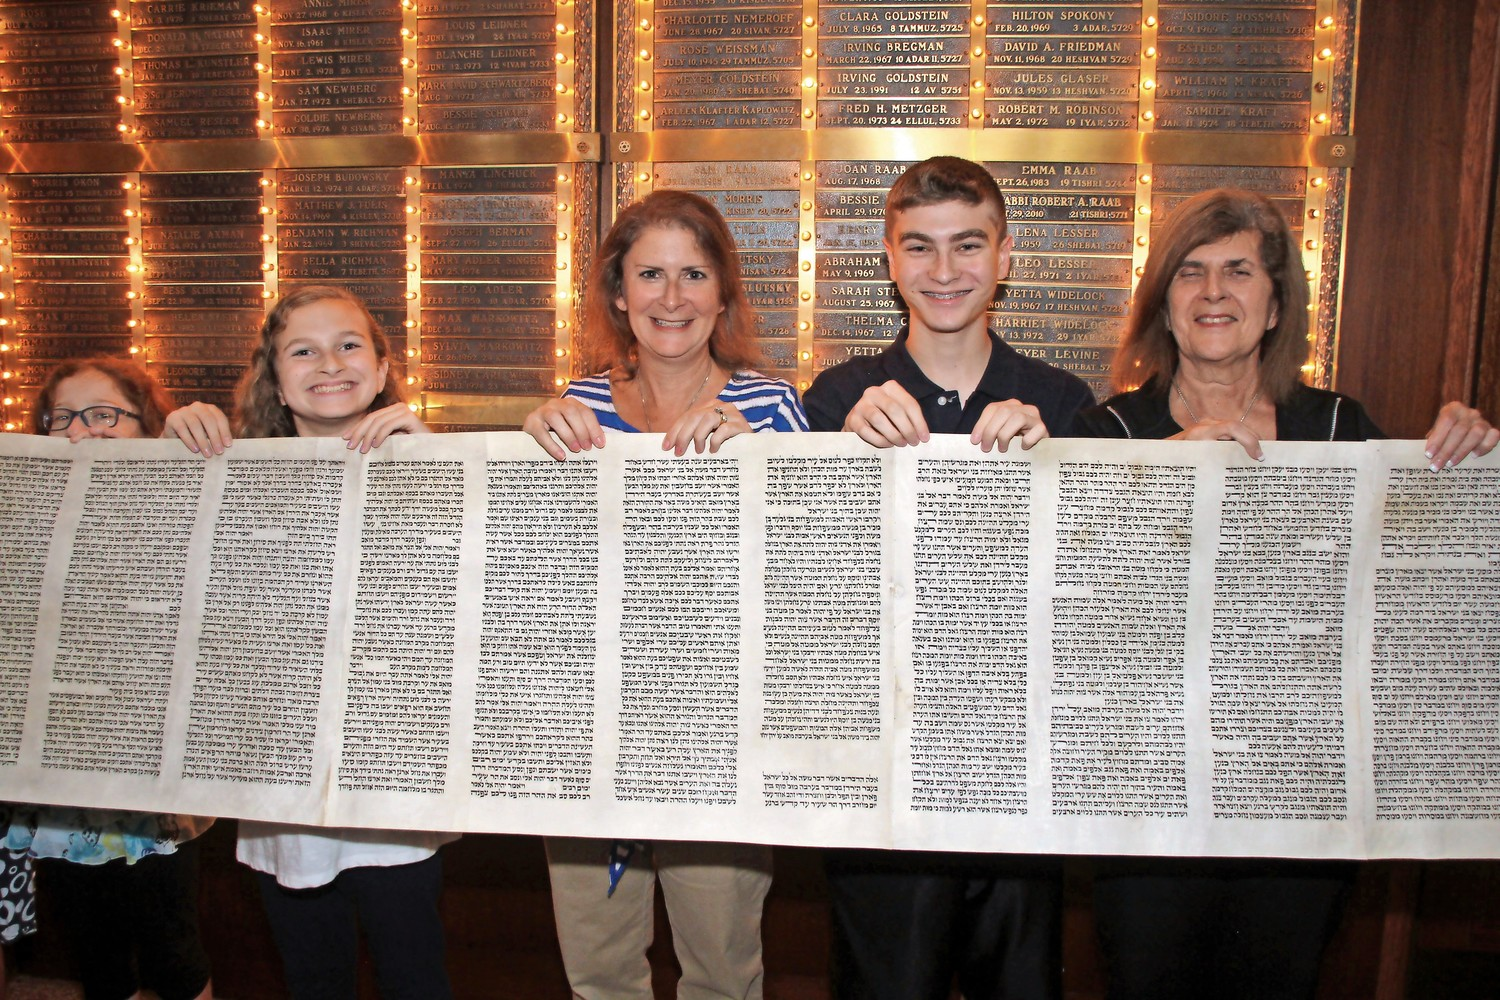 Mandy, left, Amy and Ryan Krauss held the Torah scroll, along with Libby Bienenfeld, far right, at the Simchat Torah services in one of the synagogues' first joint services on Oct. 11.